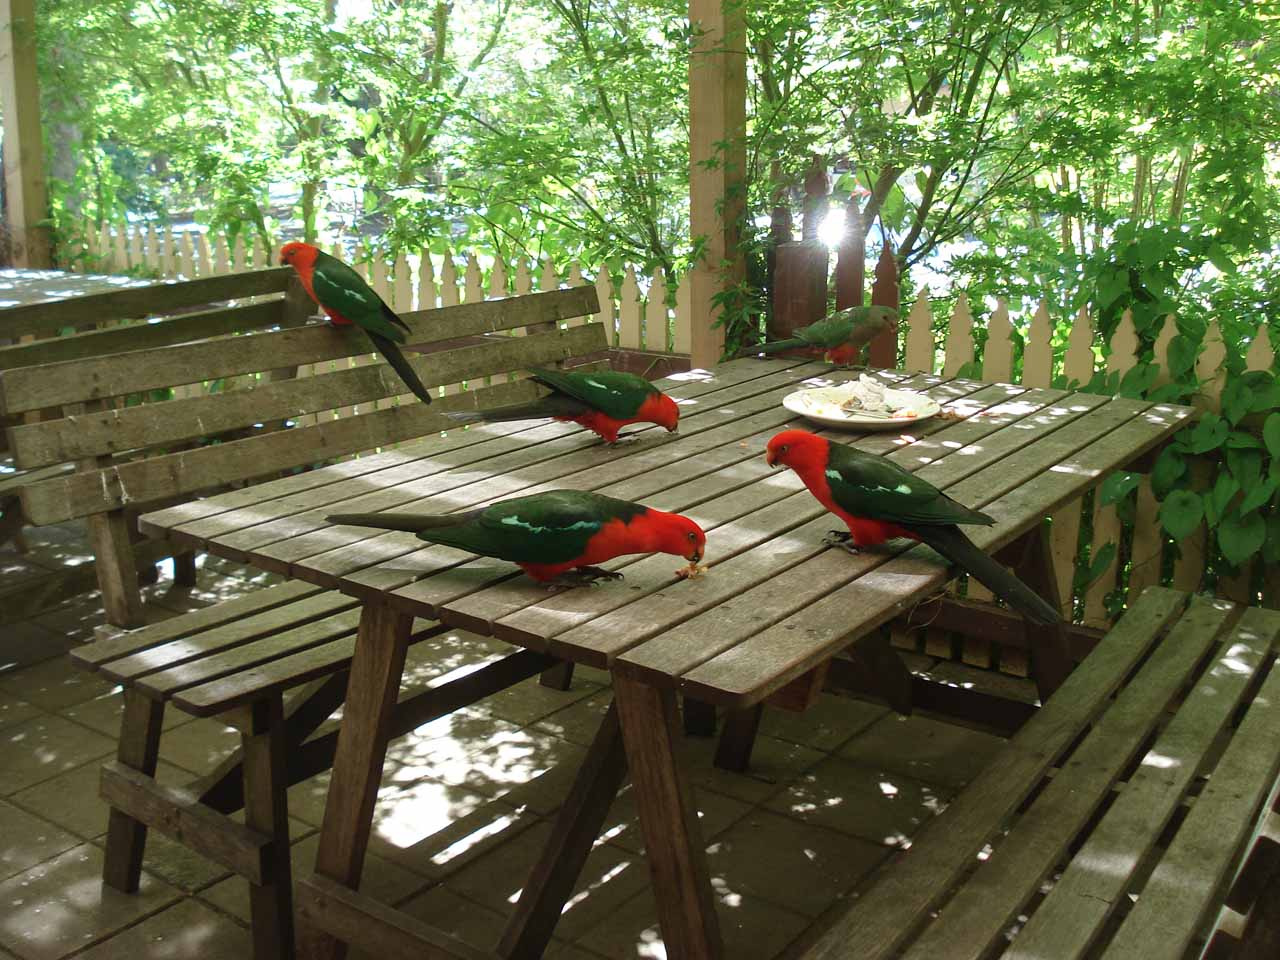 When we were getting meat pies in Marysville, we somehow chanced upon this comical scene of these red-headed birds pecking away at someone's picnic leftovers